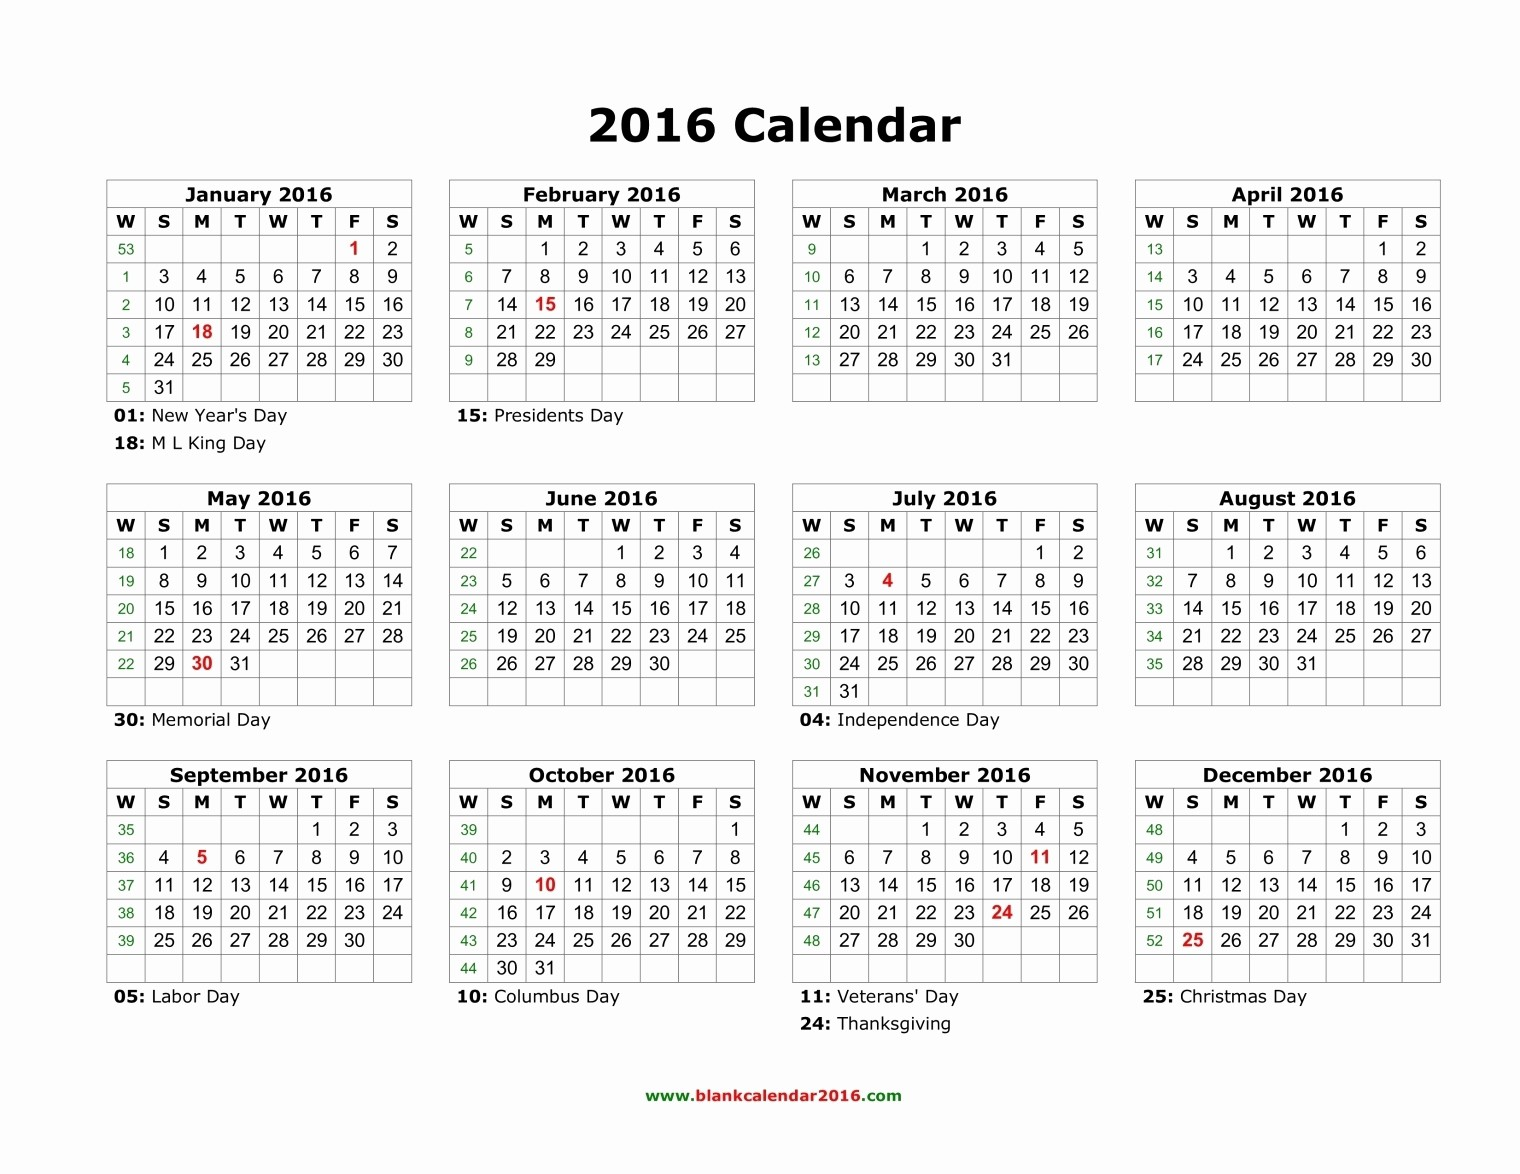 Fiscal Year Calendar 2016 Template Best Of 2016 Yearly Calendar with Holidays Printable